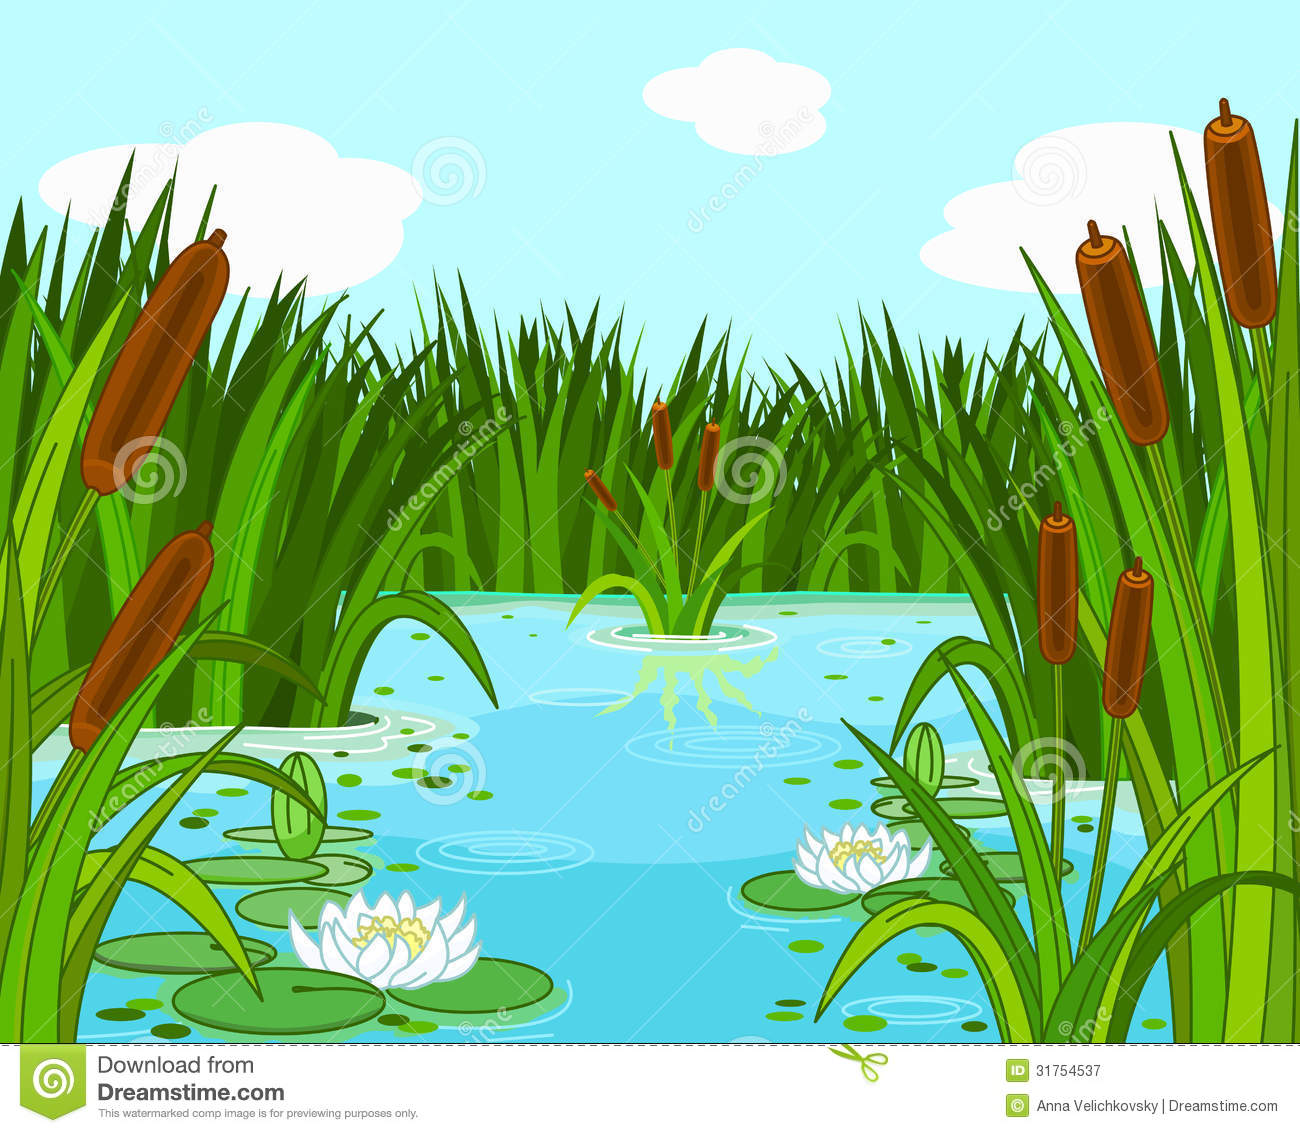 Pond Scene Royalty Free Stock Photography - Image: 31754537